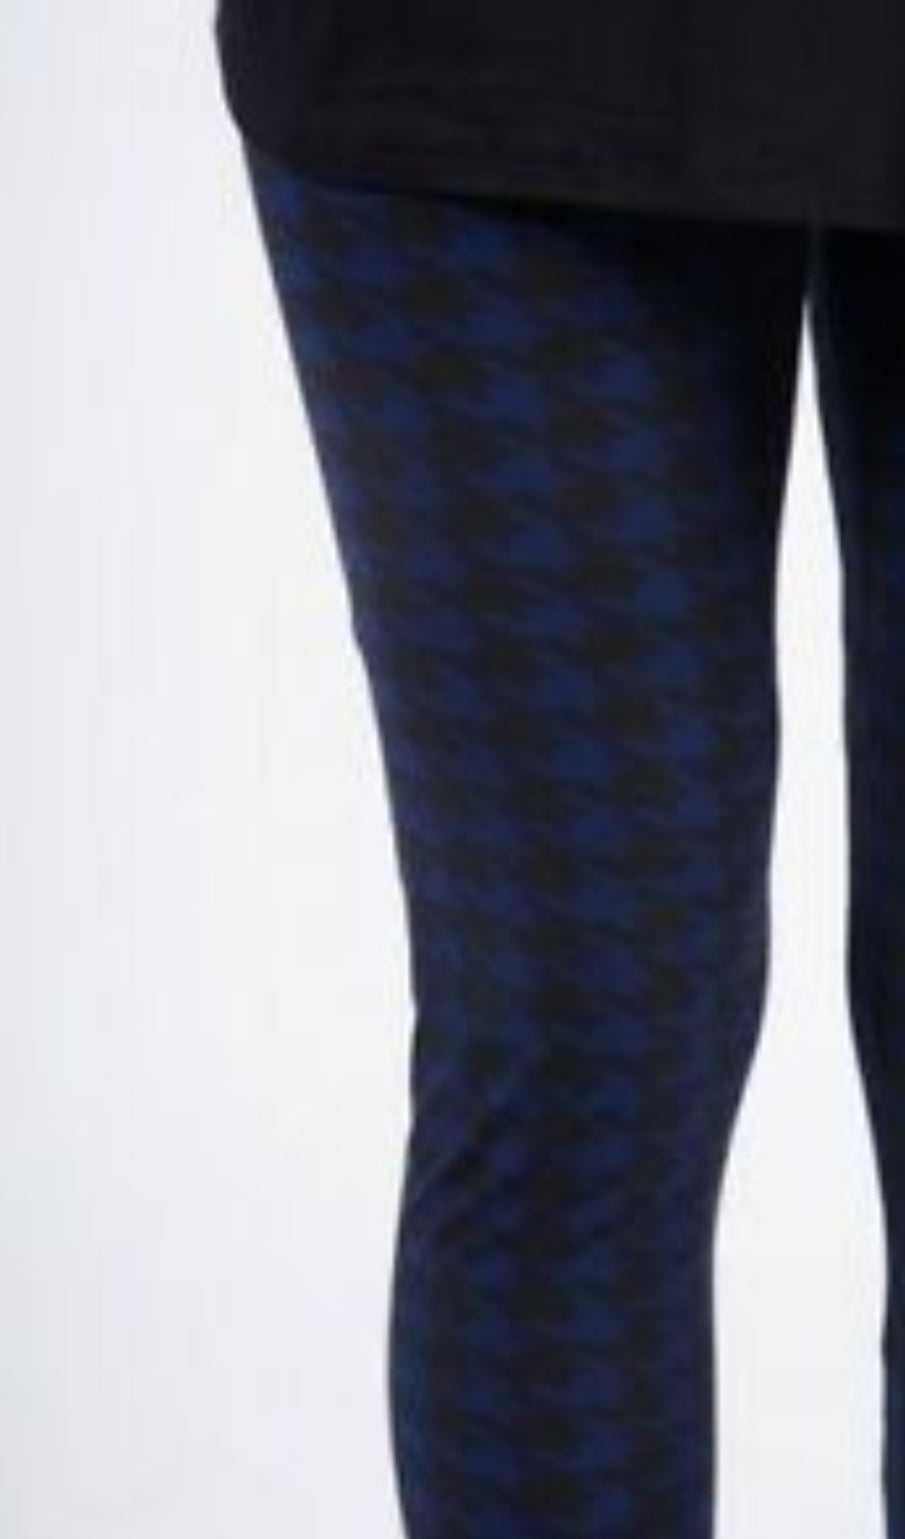 KIDS Leggings - Ain't Nothing but a Hound Dog- Navy